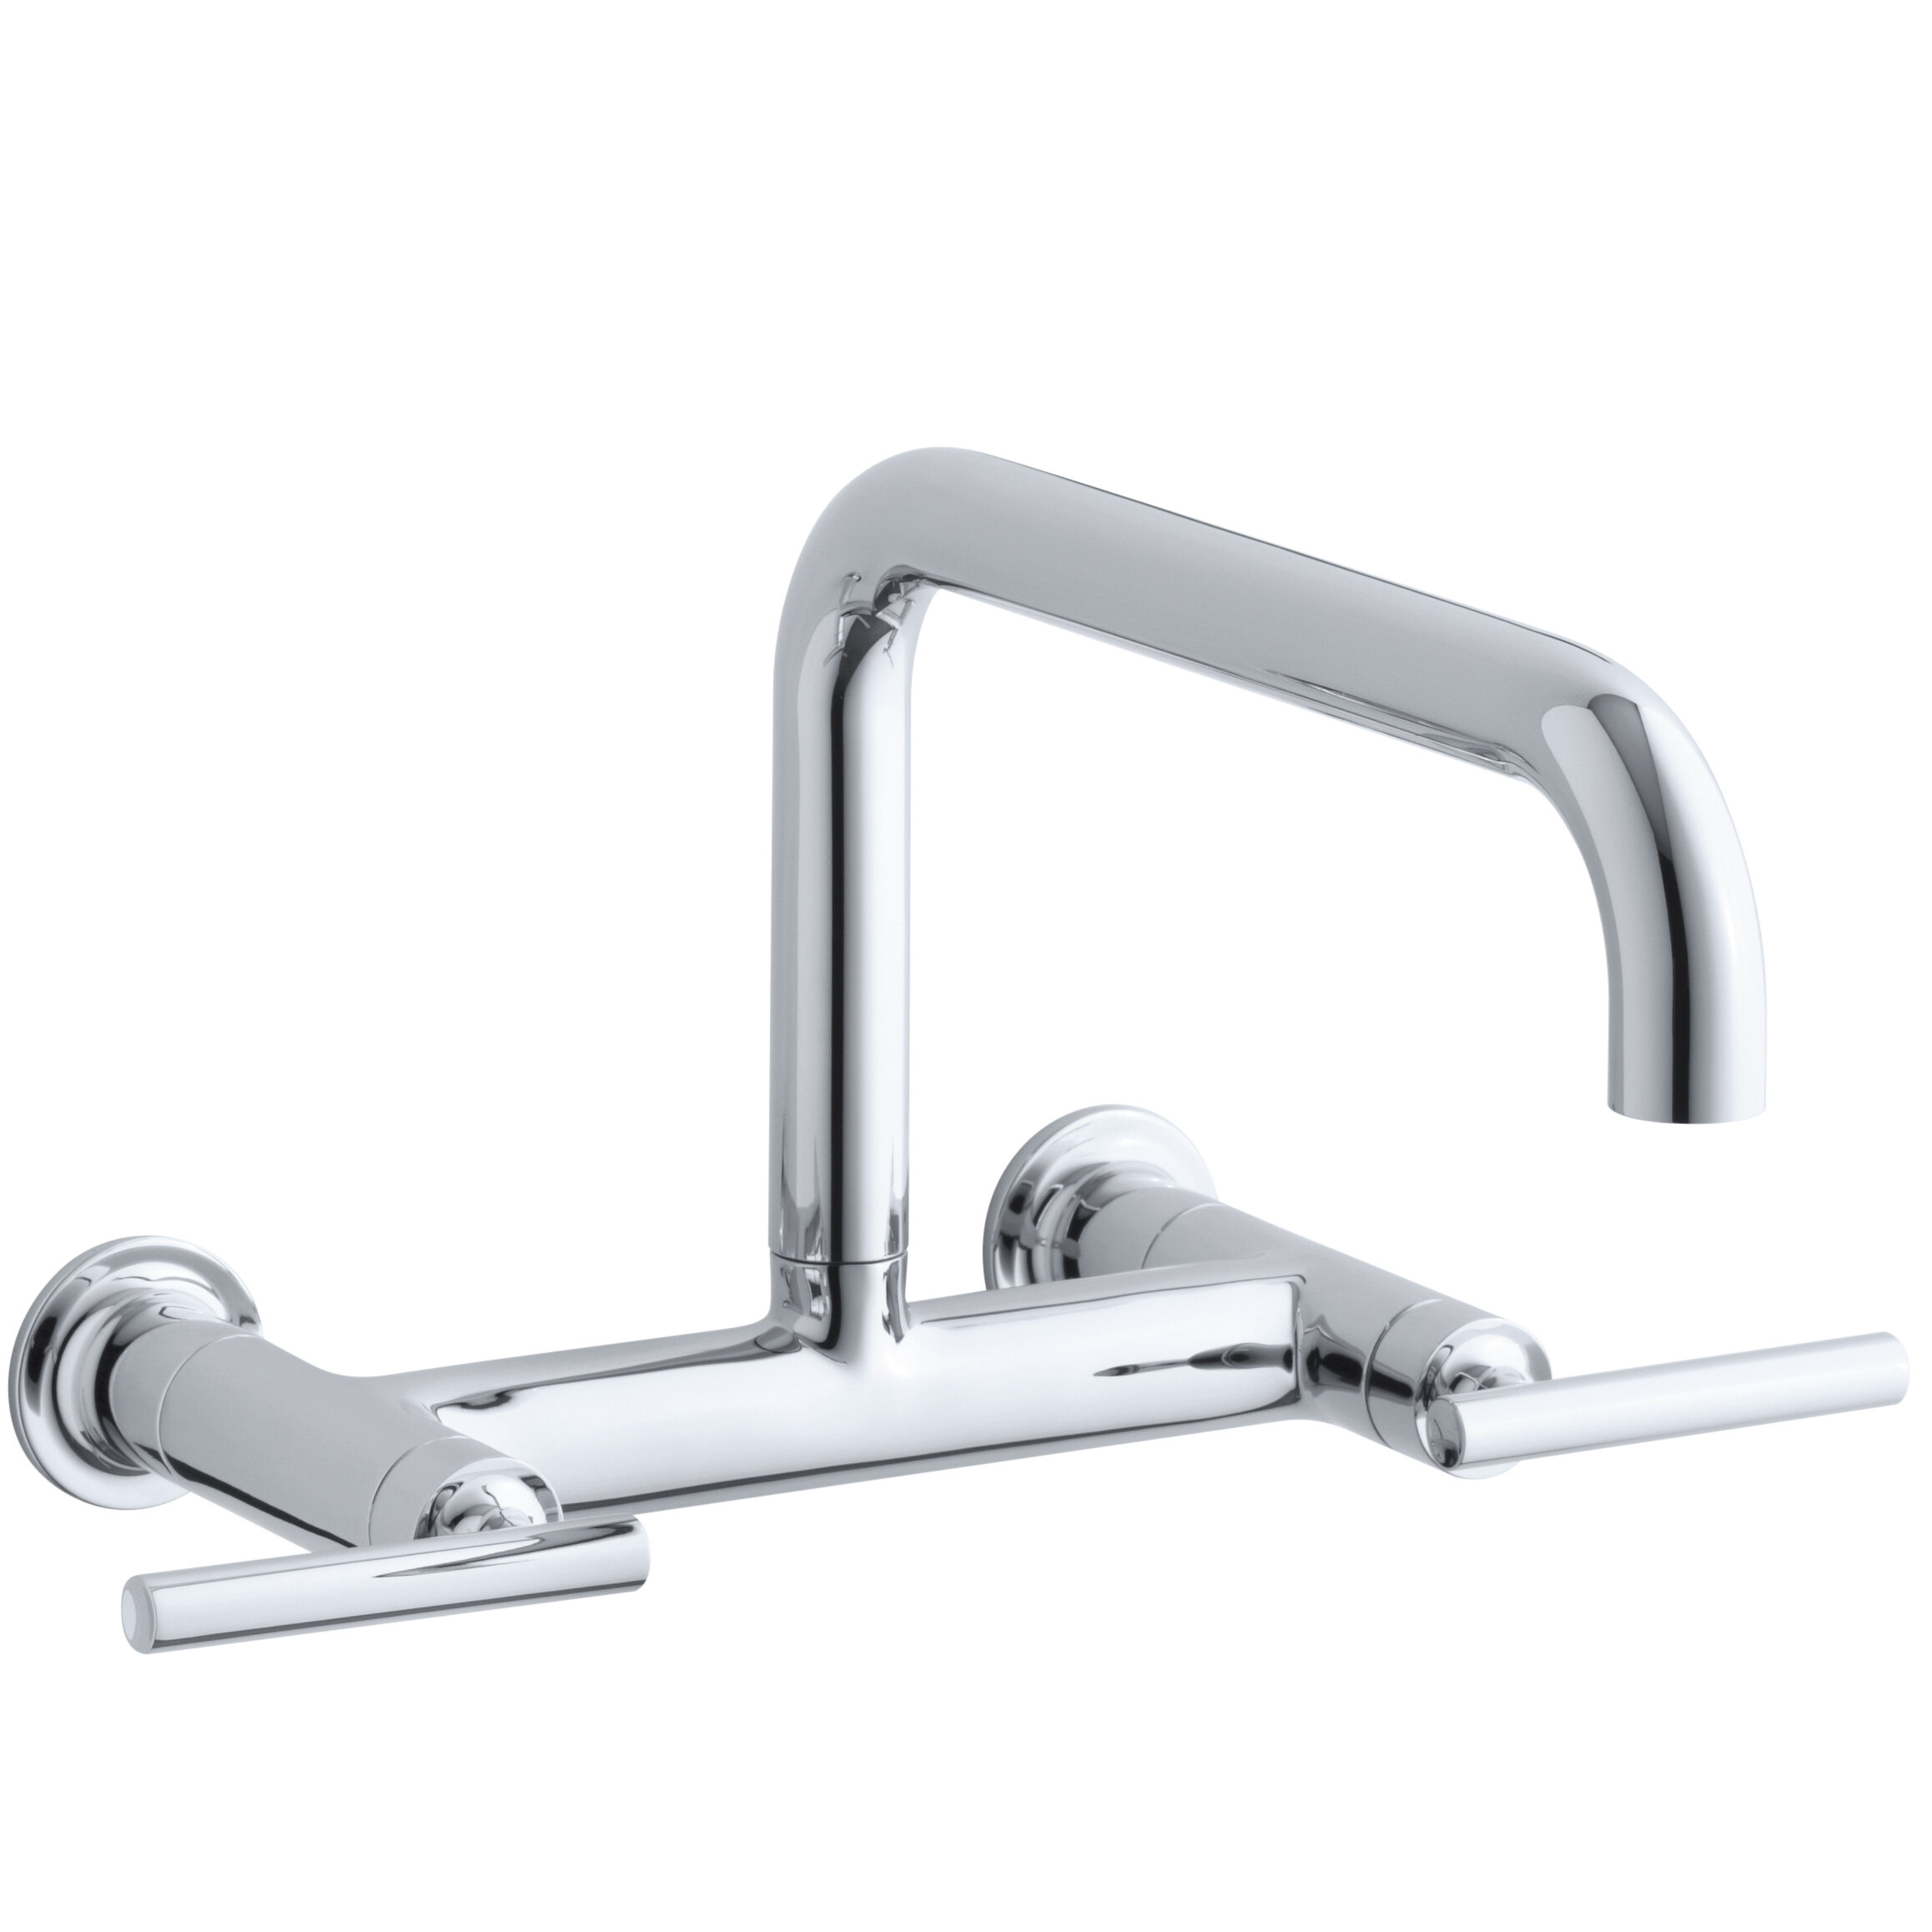 spout handles faucets lever side garden faucet shipping sprayer high victorian today home overstock with free bridge kitchen product